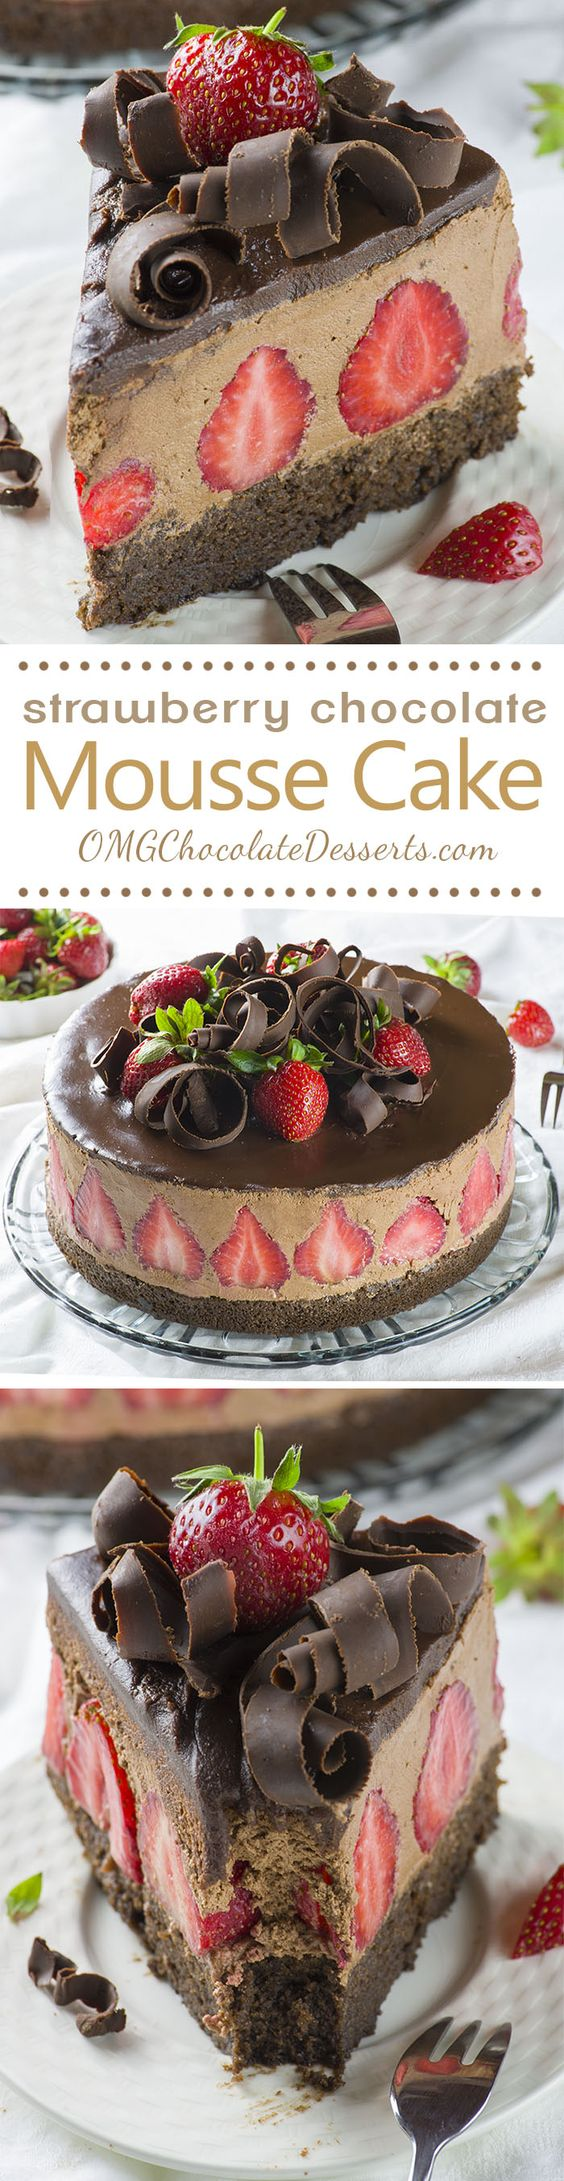 Strawberry Chocolate Cake is like the best chocolate covered strawberries you've ever eaten!!!: